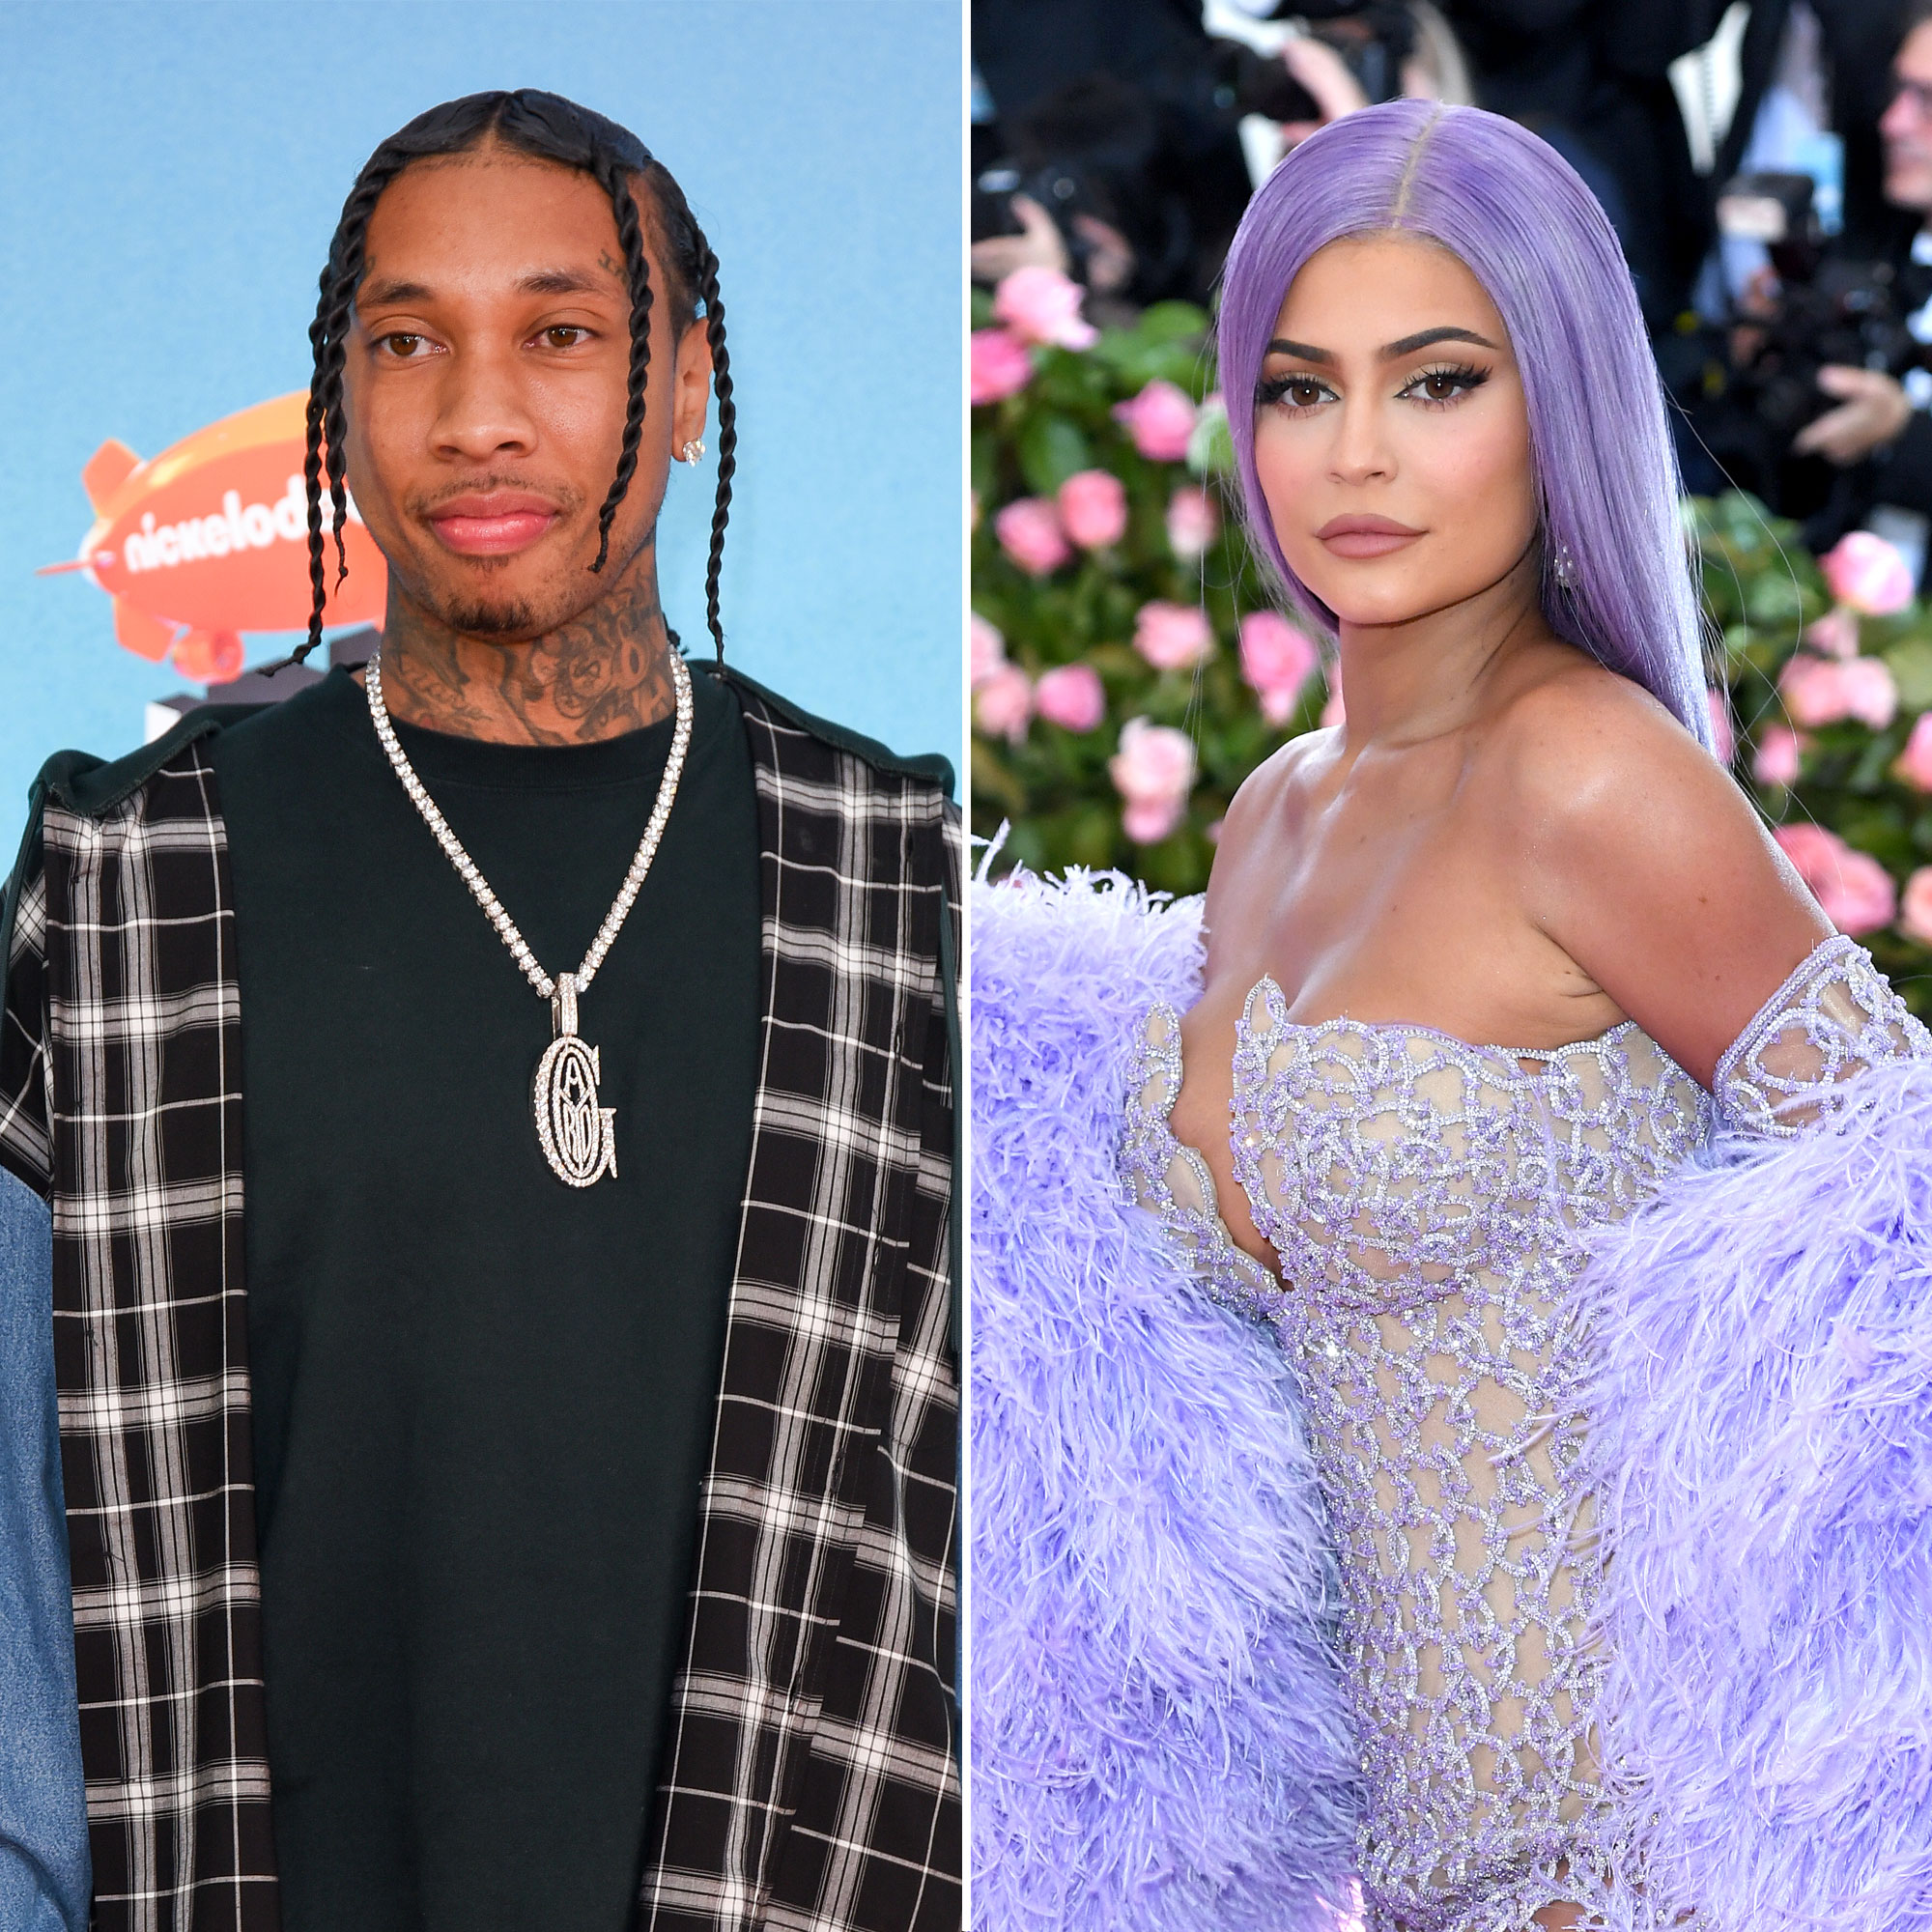 e04dcb5d1e9 Tyga Awkwardly Sidesteps Questions About Ex-Girlfriend Kylie Jenner: 'You  Date, You Move On'